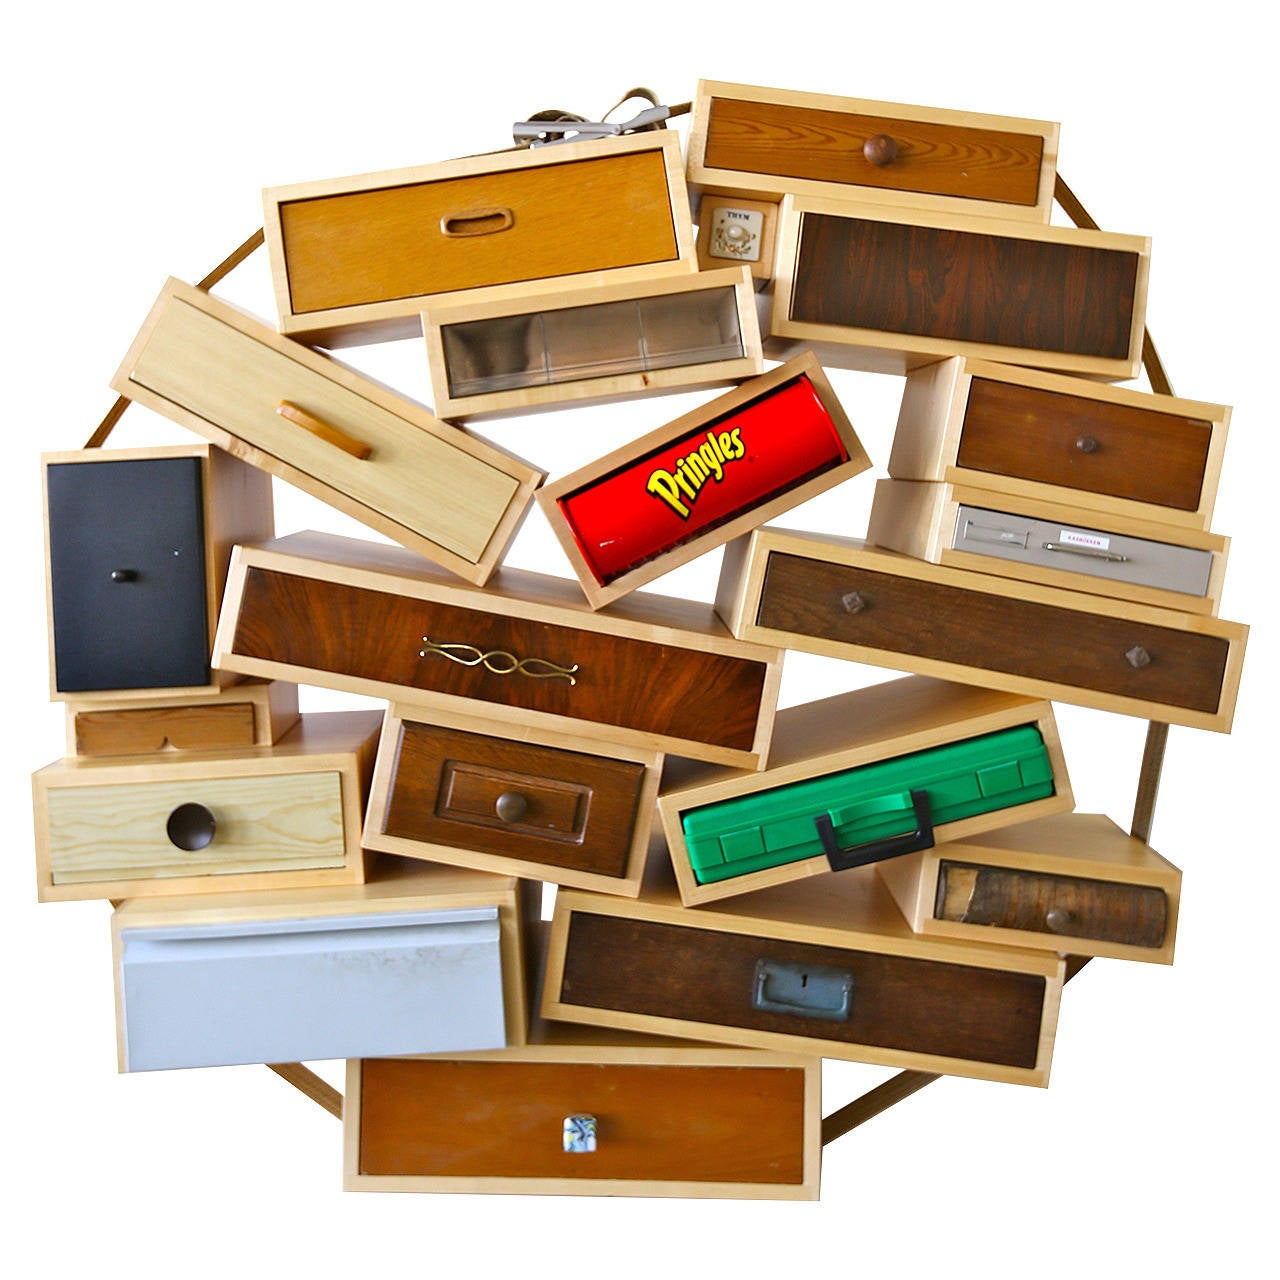 Tejo Remy Quot You Can T Lay Down Your Memories Quot Cabinet At